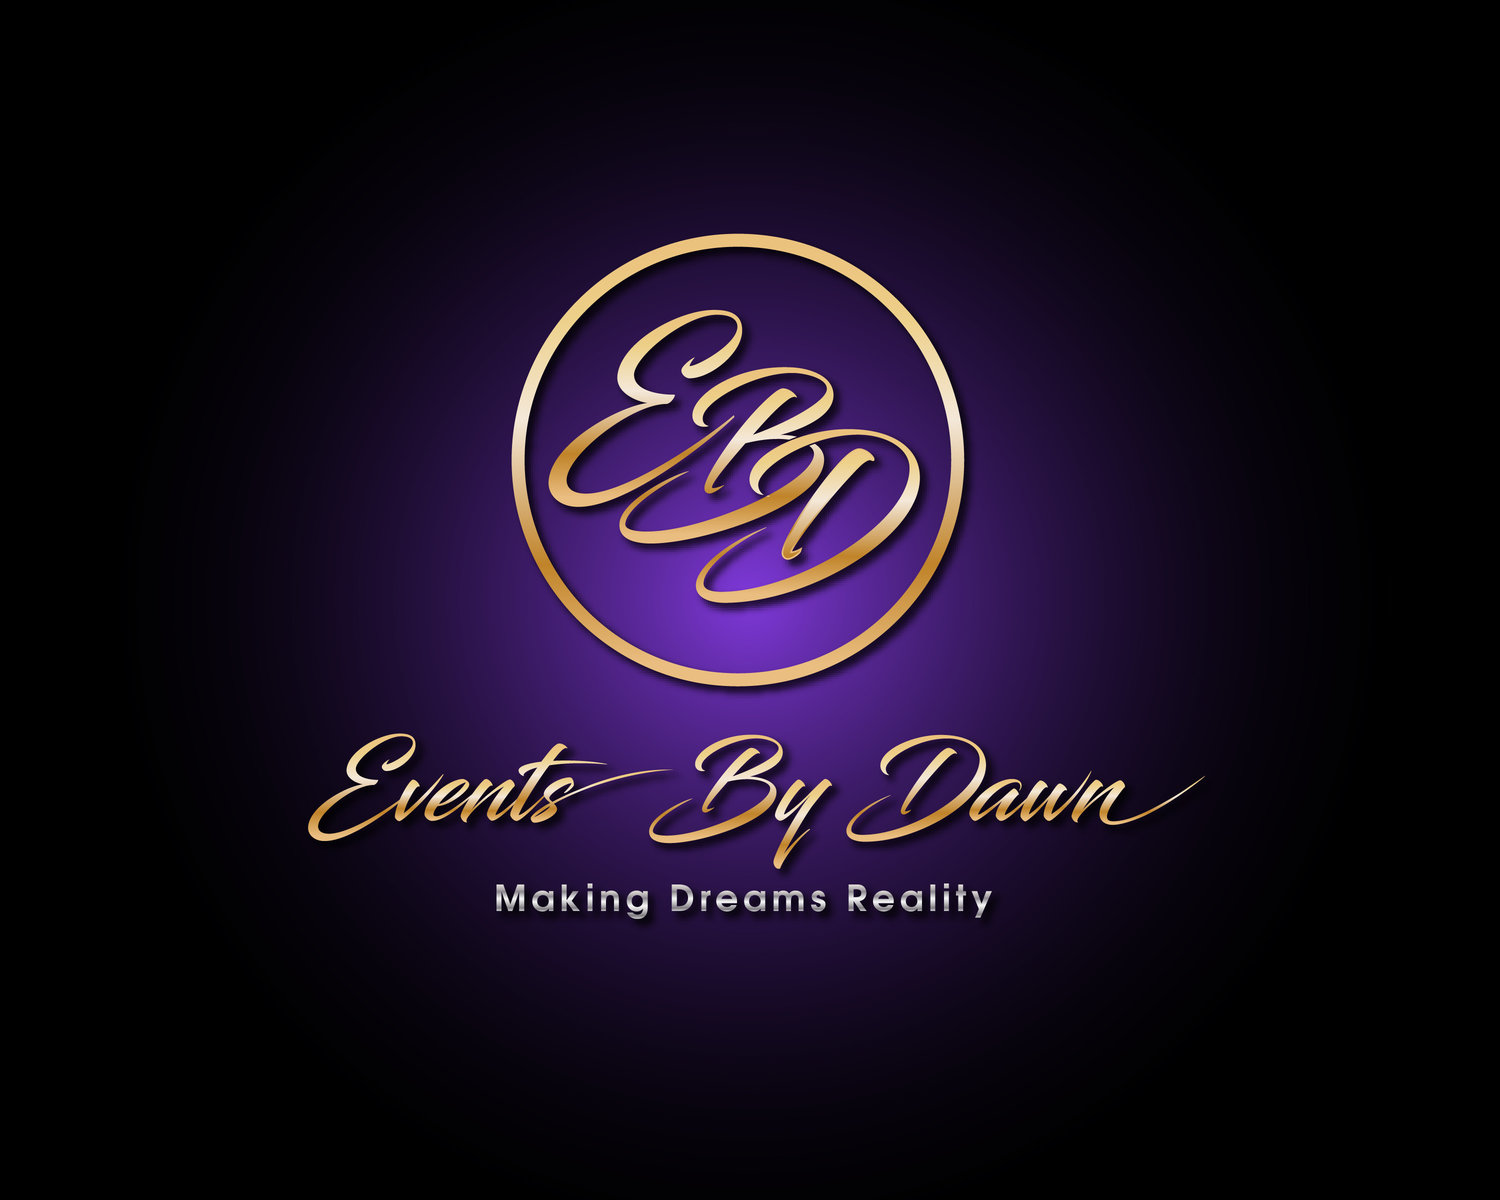 Events By Dawn...Making Dreams Reality.